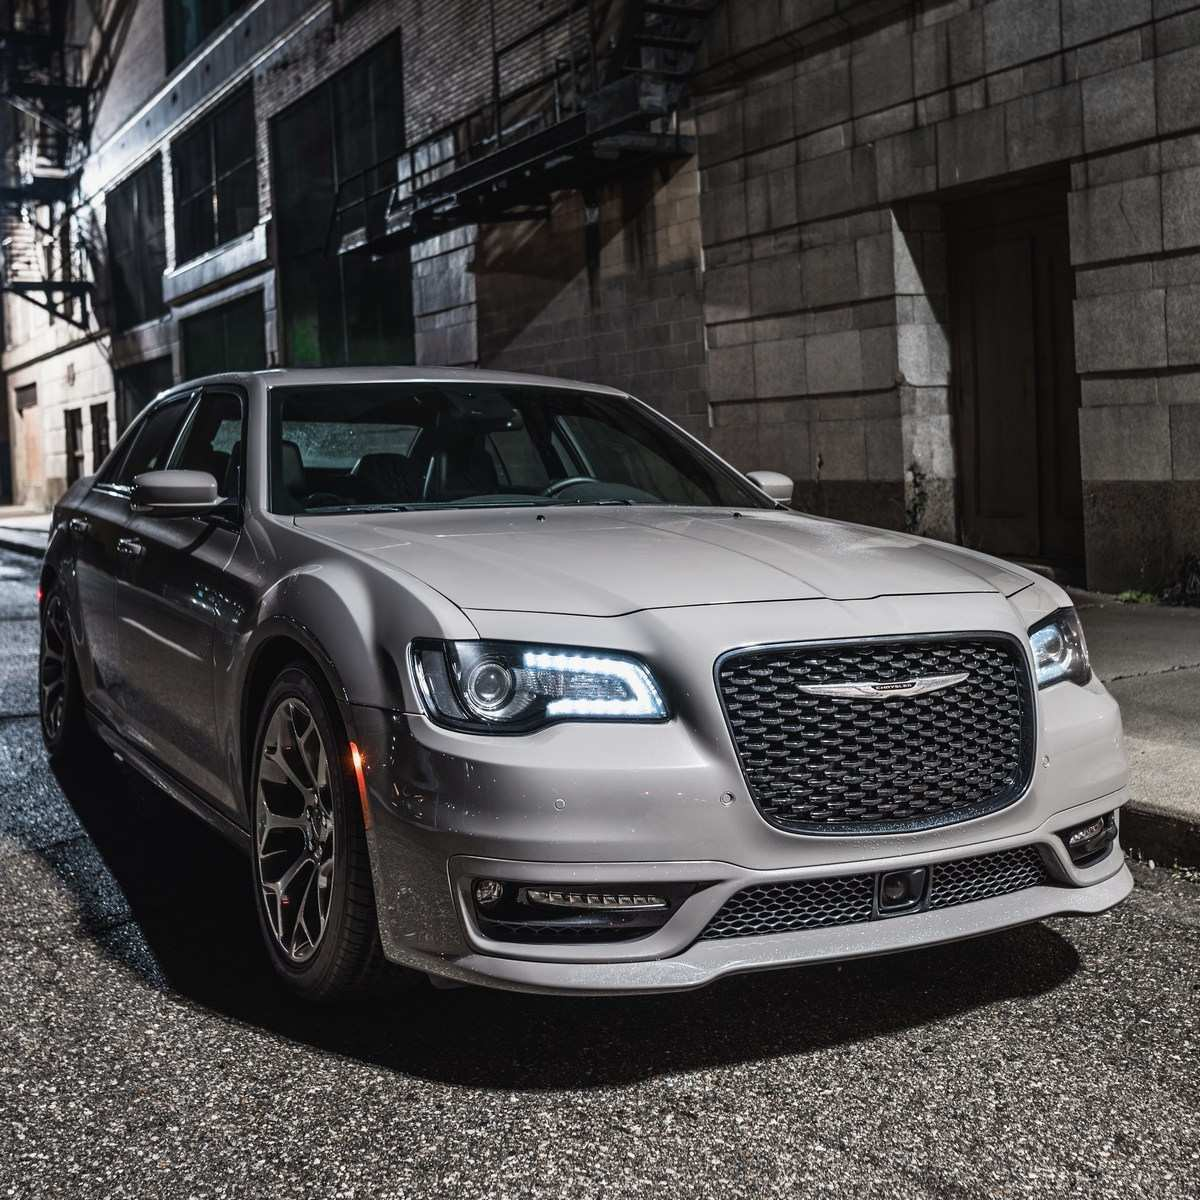 49 The 2020 Chrysler 300 Redesign New Concept with 2020 Chrysler 300 Redesign